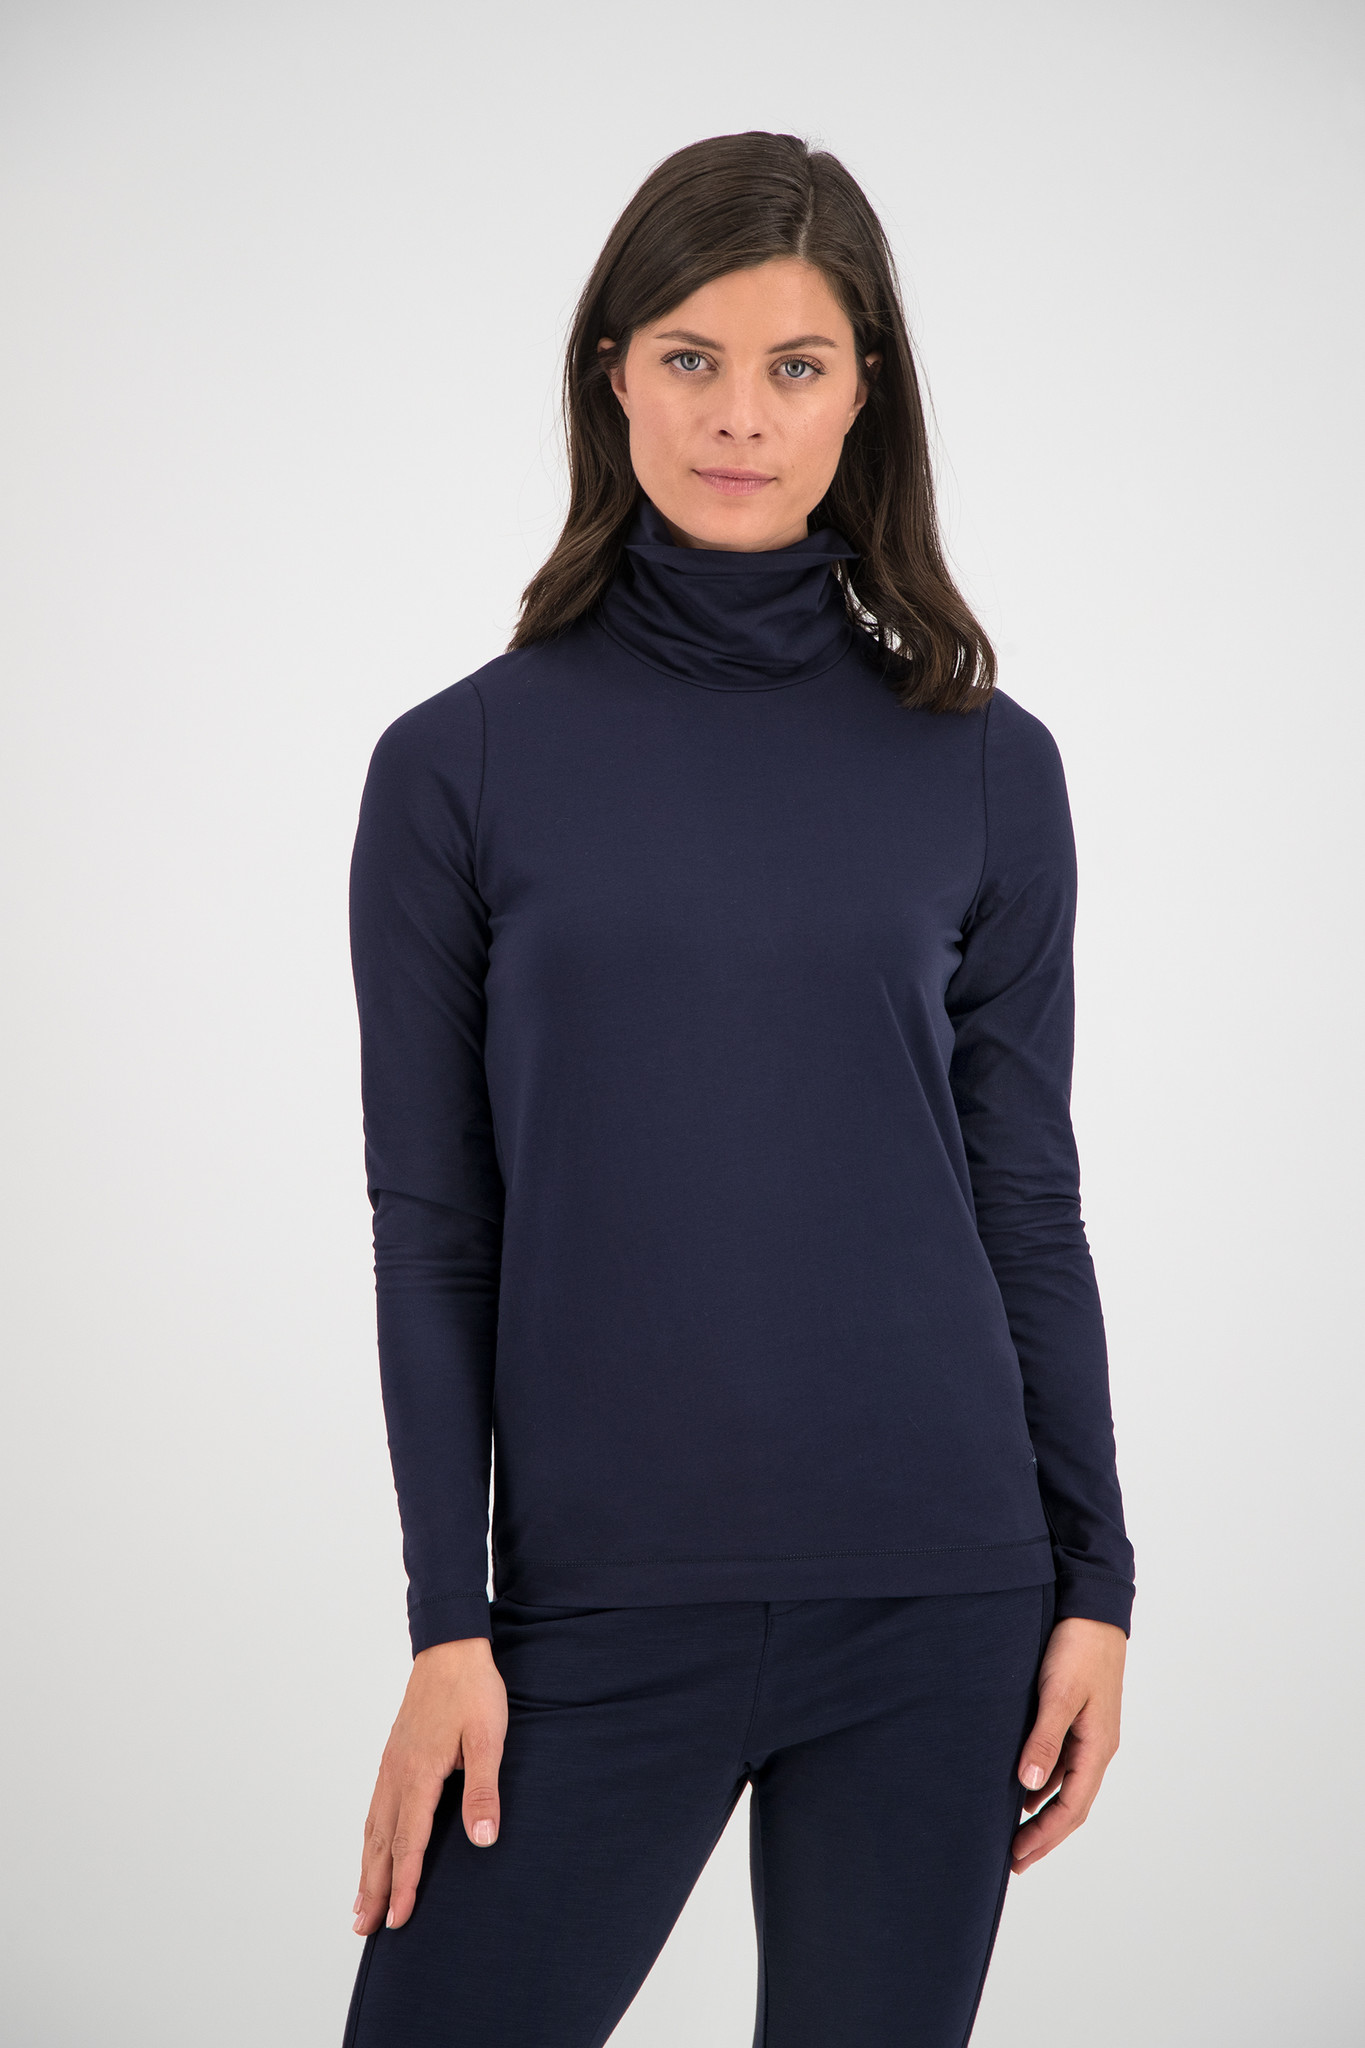 SYLVER Cotton Elastane Shirt Turtle-neck - Dark Blue